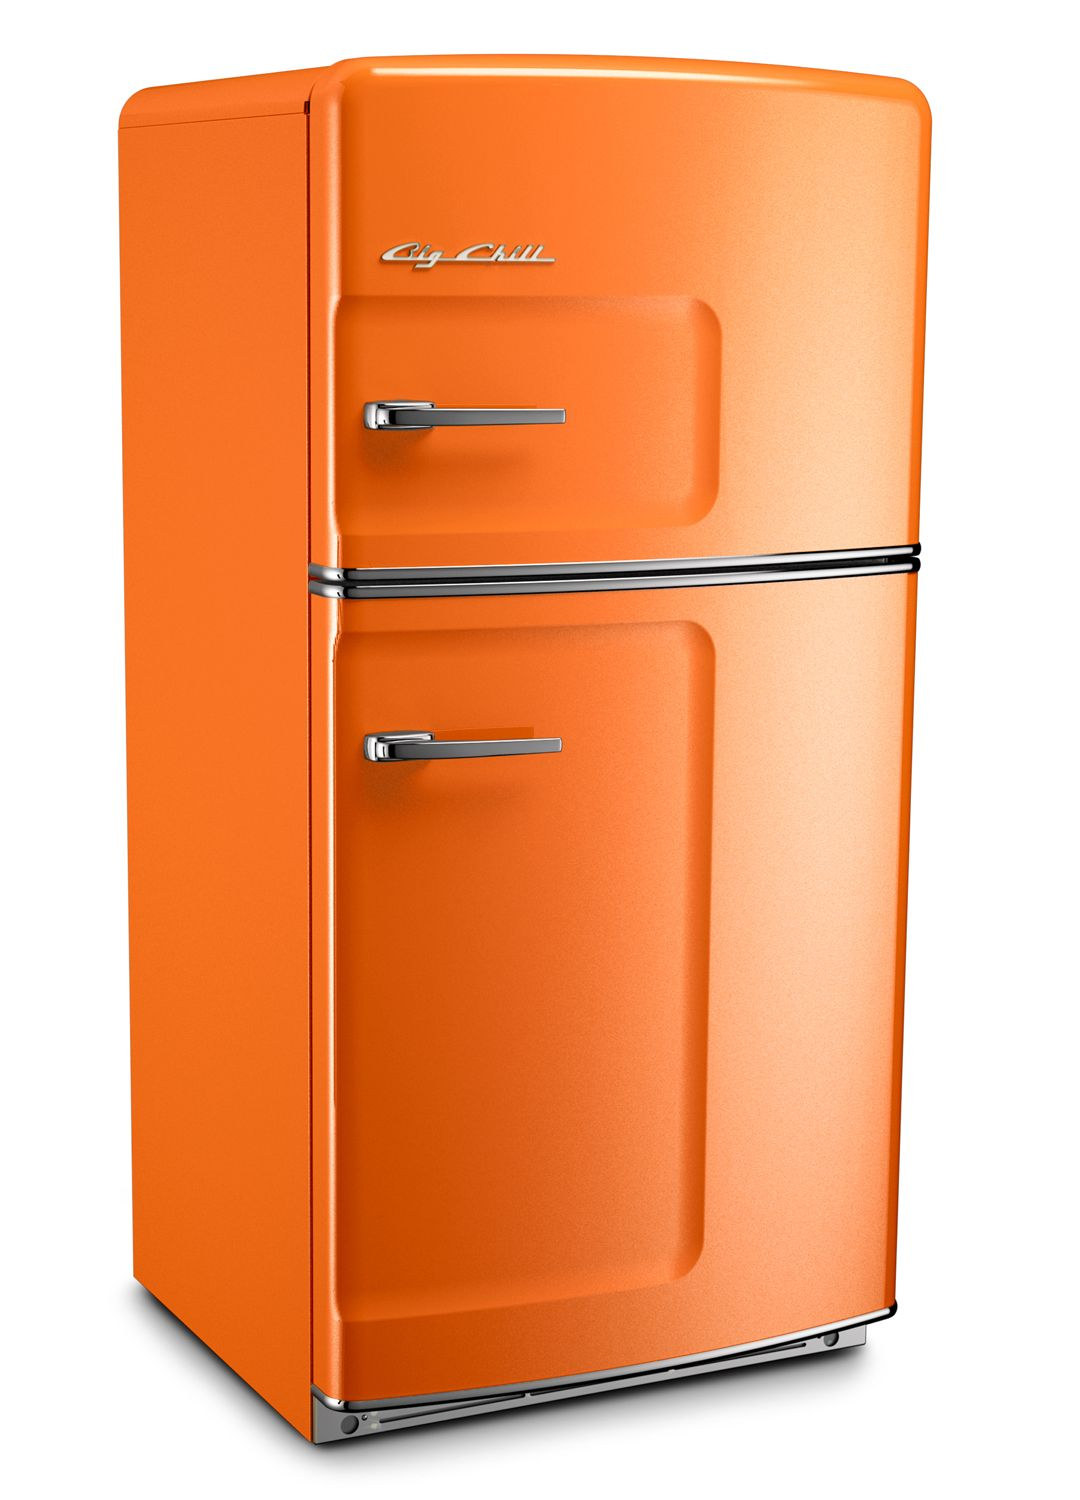 orange retro refrigerator by big chill for the home pinterest frigo d co int rieure et. Black Bedroom Furniture Sets. Home Design Ideas